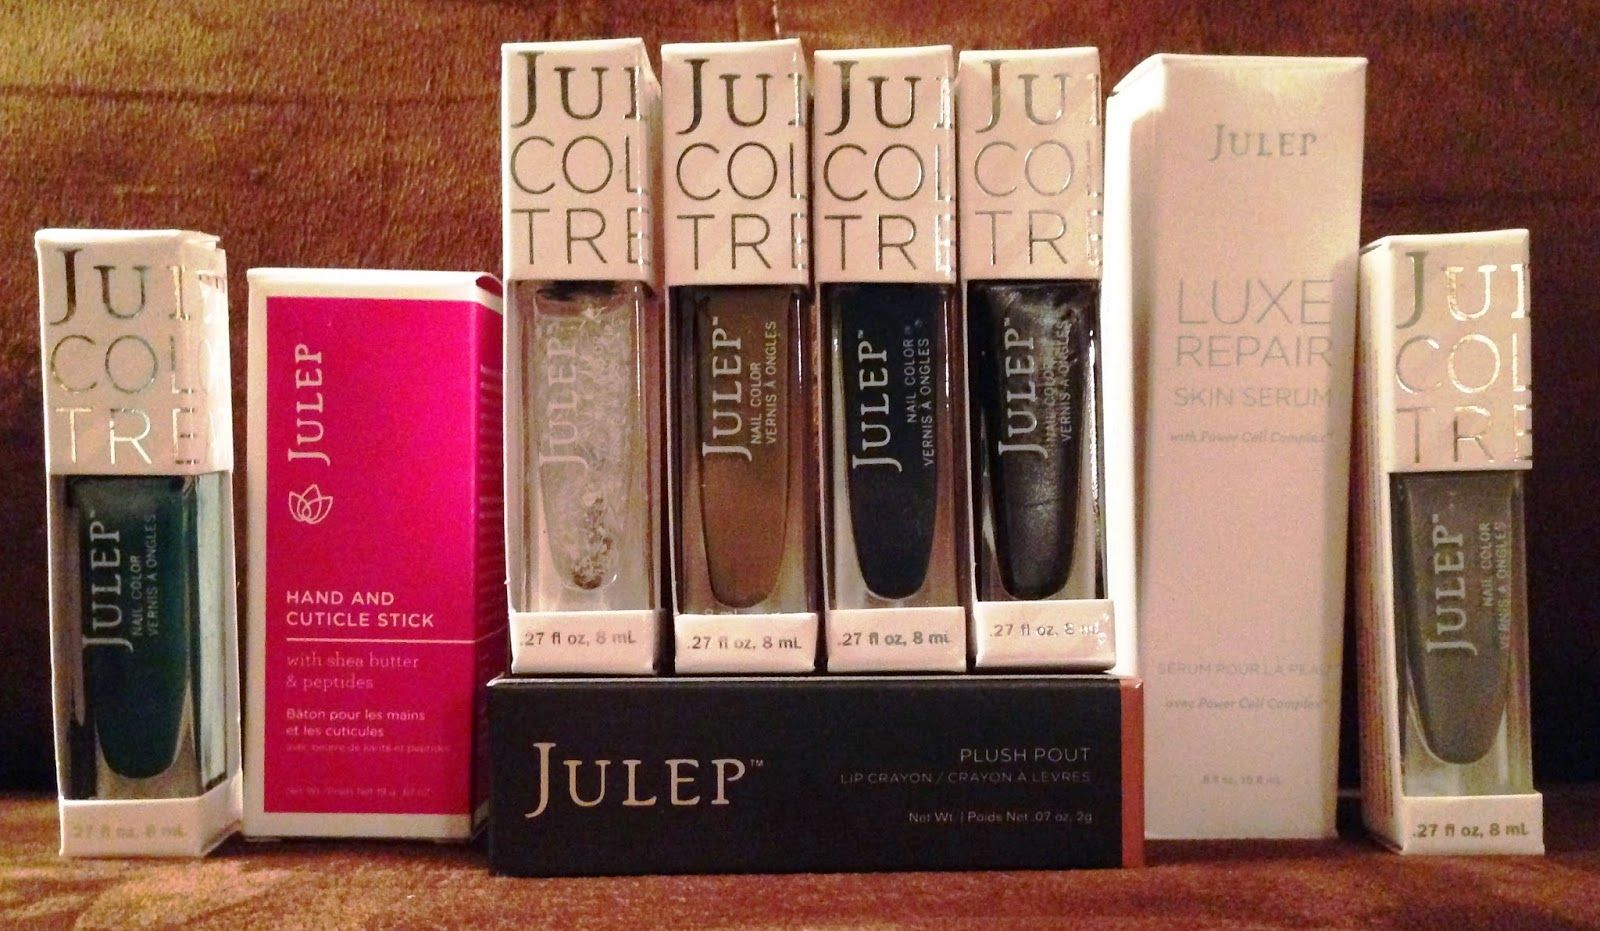 Mailbox Addiction: Julep September Box Subscription Review